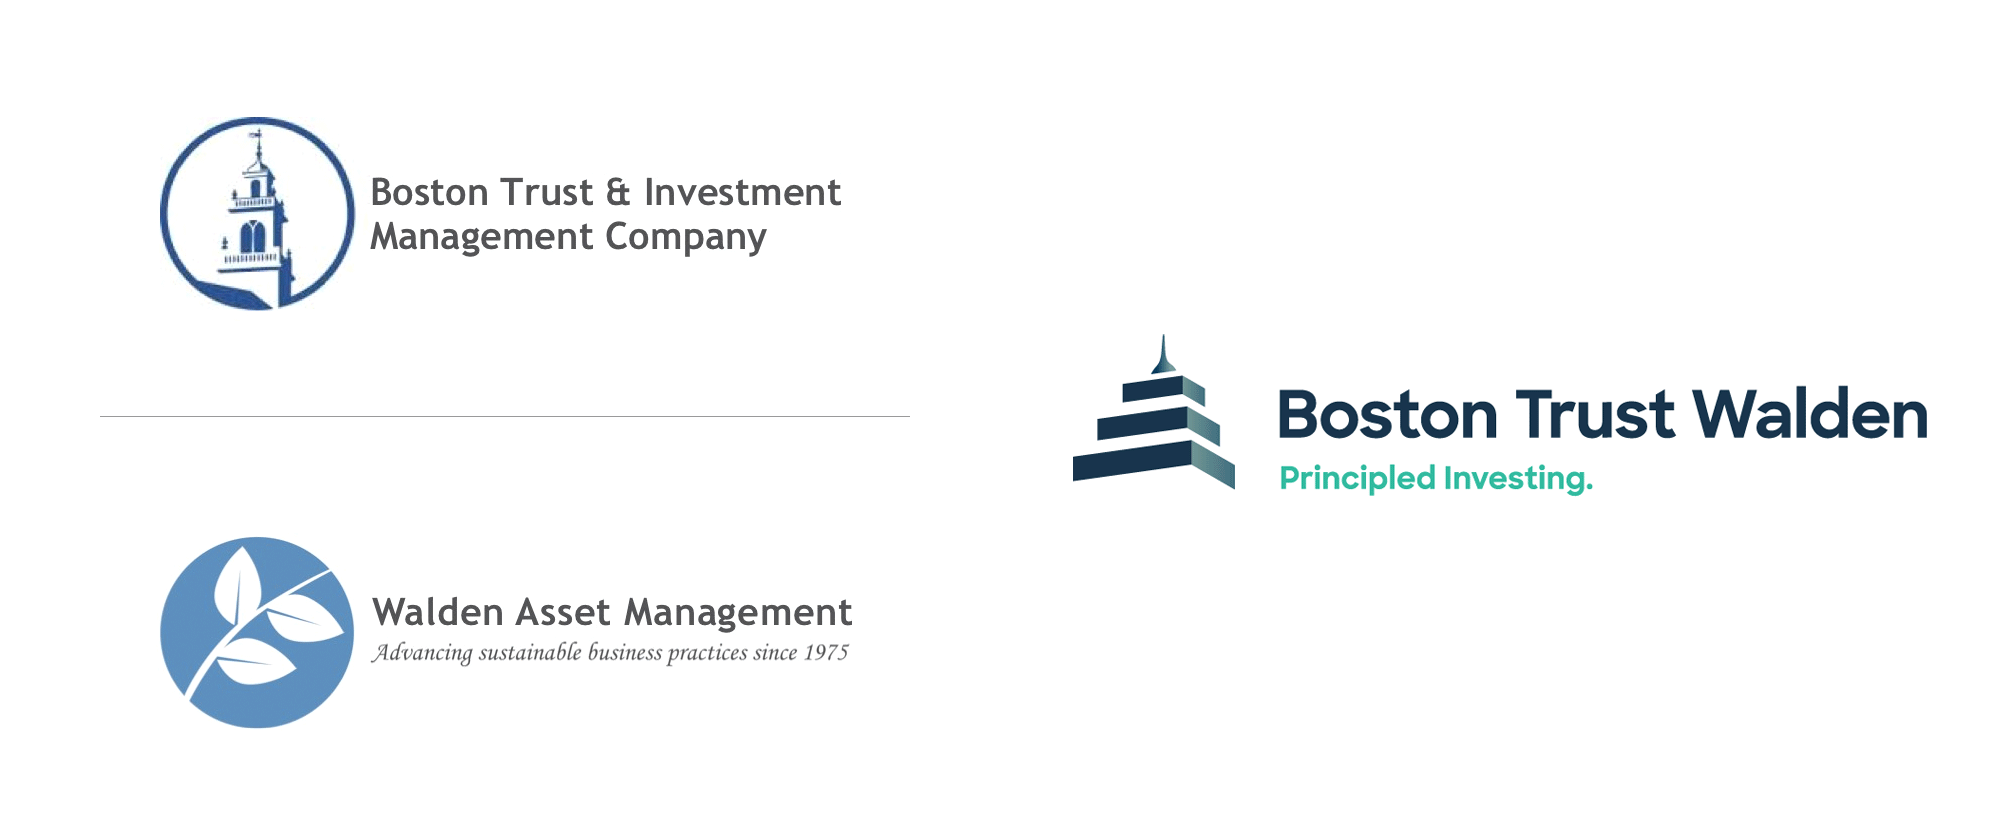 New Logo and Identity for Boston Trust Walden by North Street